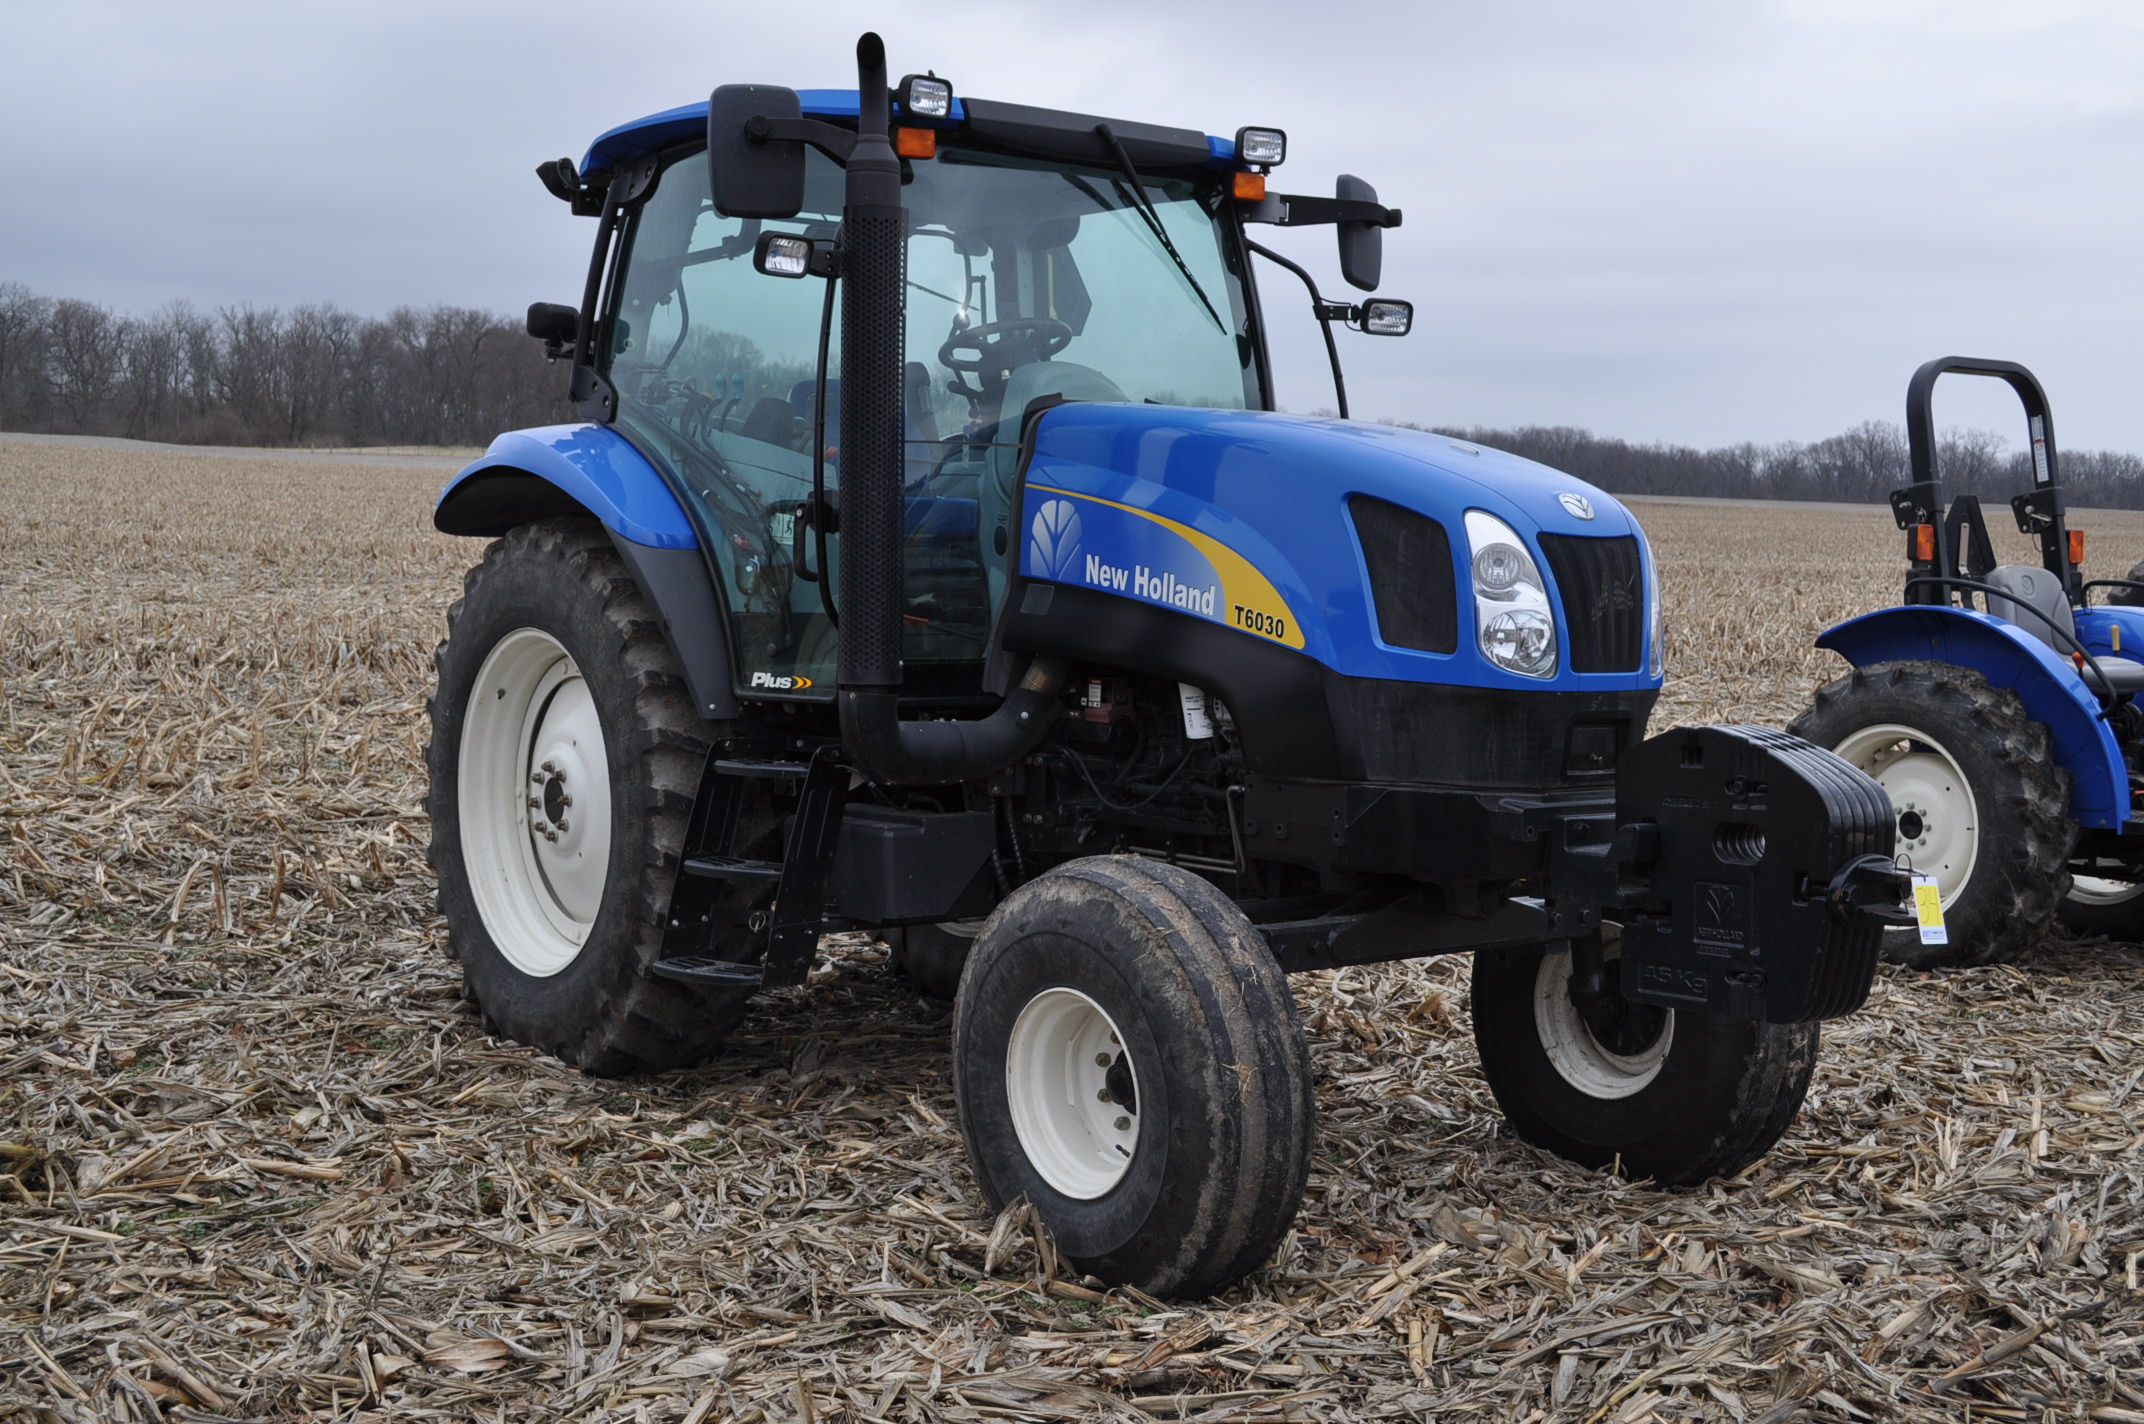 New Holland T6030 tractor, CHA, 16.9 R 38 tires, 11.00-16 front, 6 front wts, 3 hyd remotes, 3 pt, - Image 4 of 21